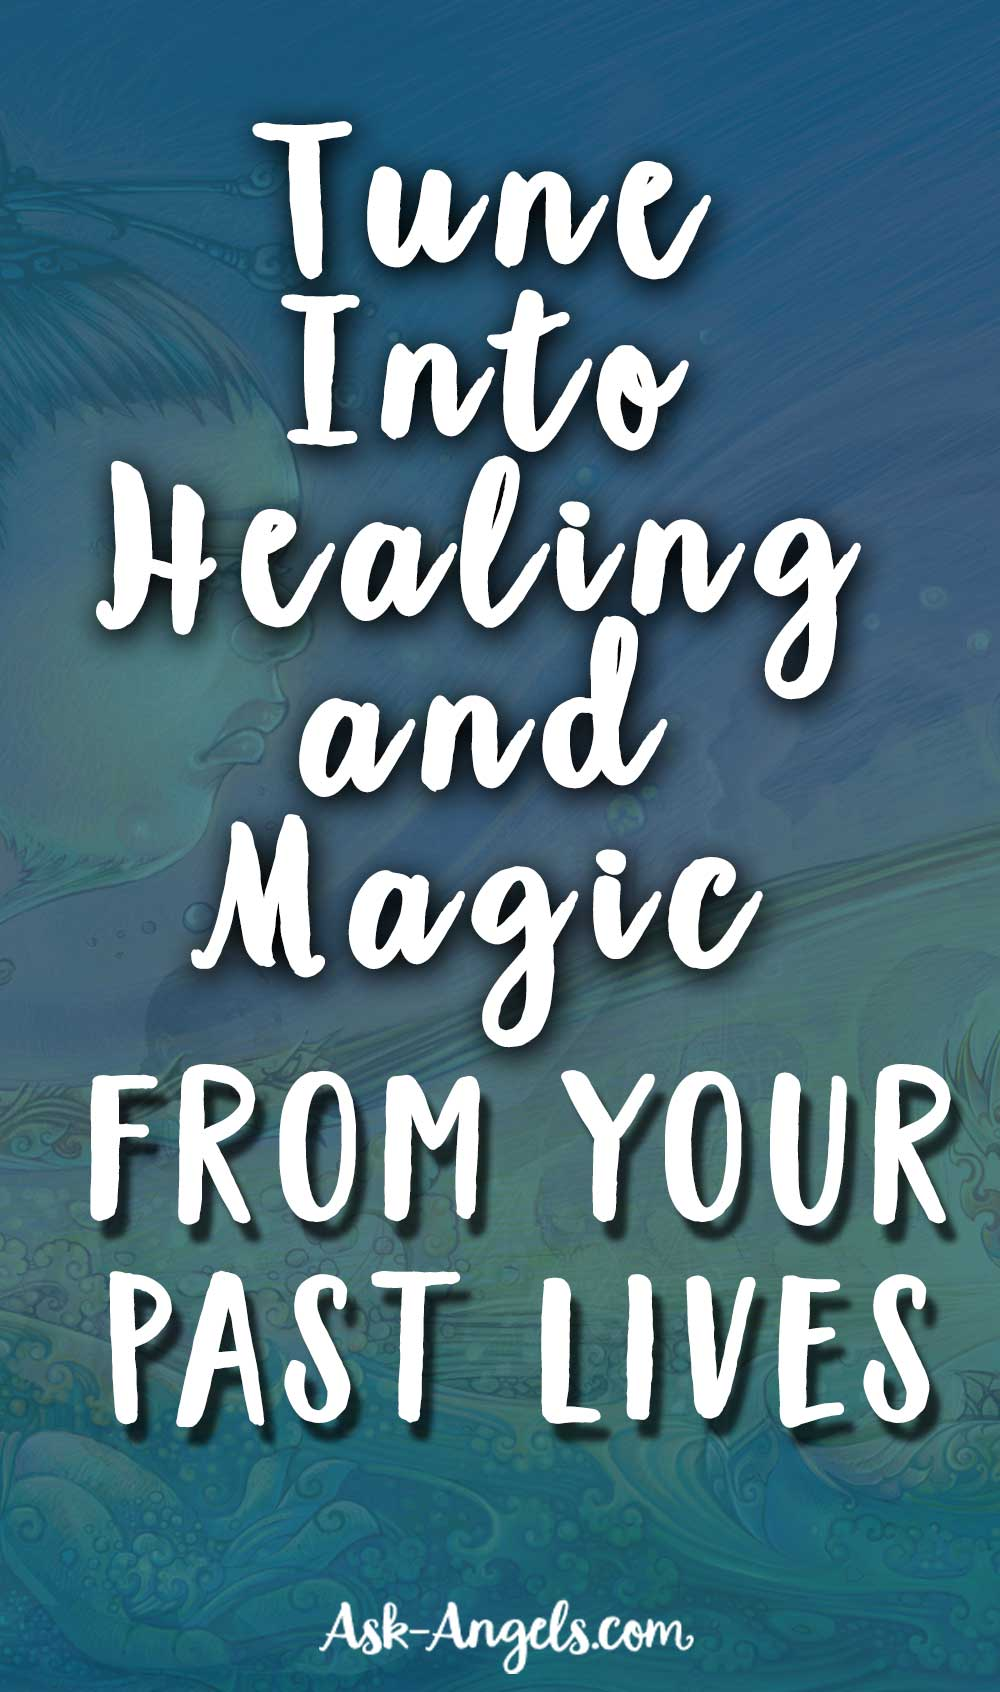 Past Life And Karmic Tarot By Edain Mccoy: Past Life Regression Angel Course